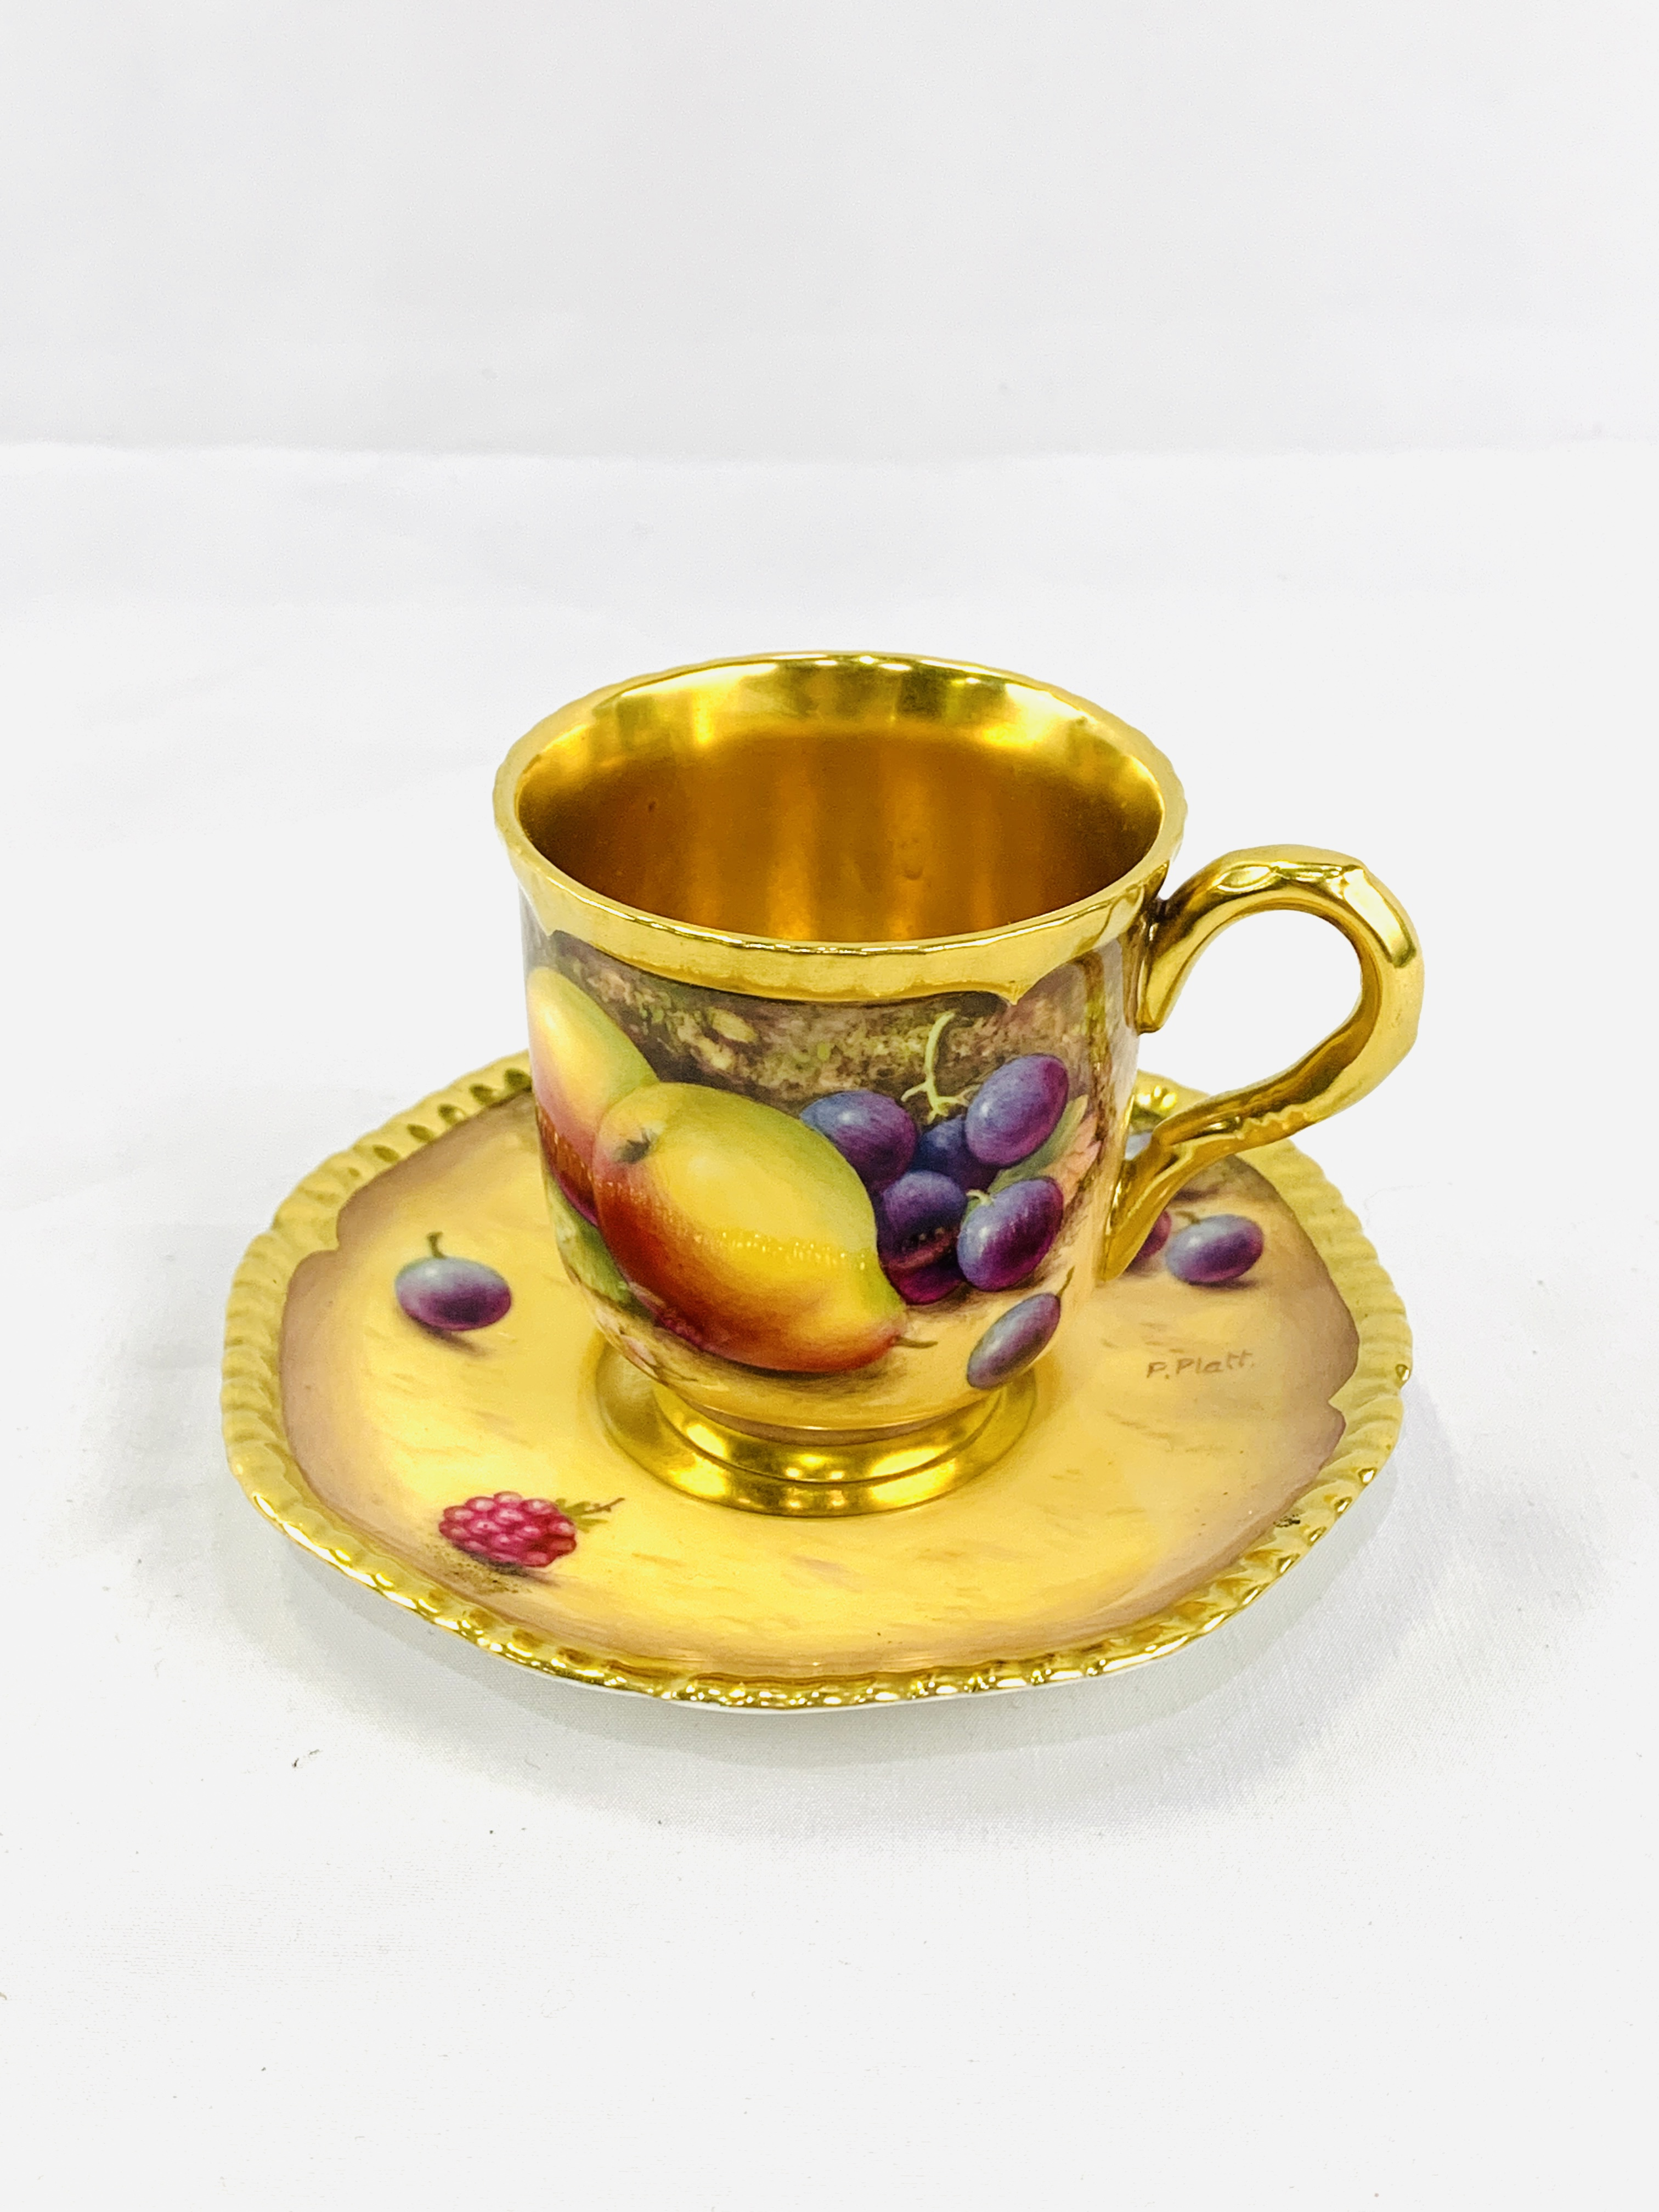 """Royal Worcester """"Fruit Study"""" coffee cup and saucer by P Platt - Image 2 of 6"""